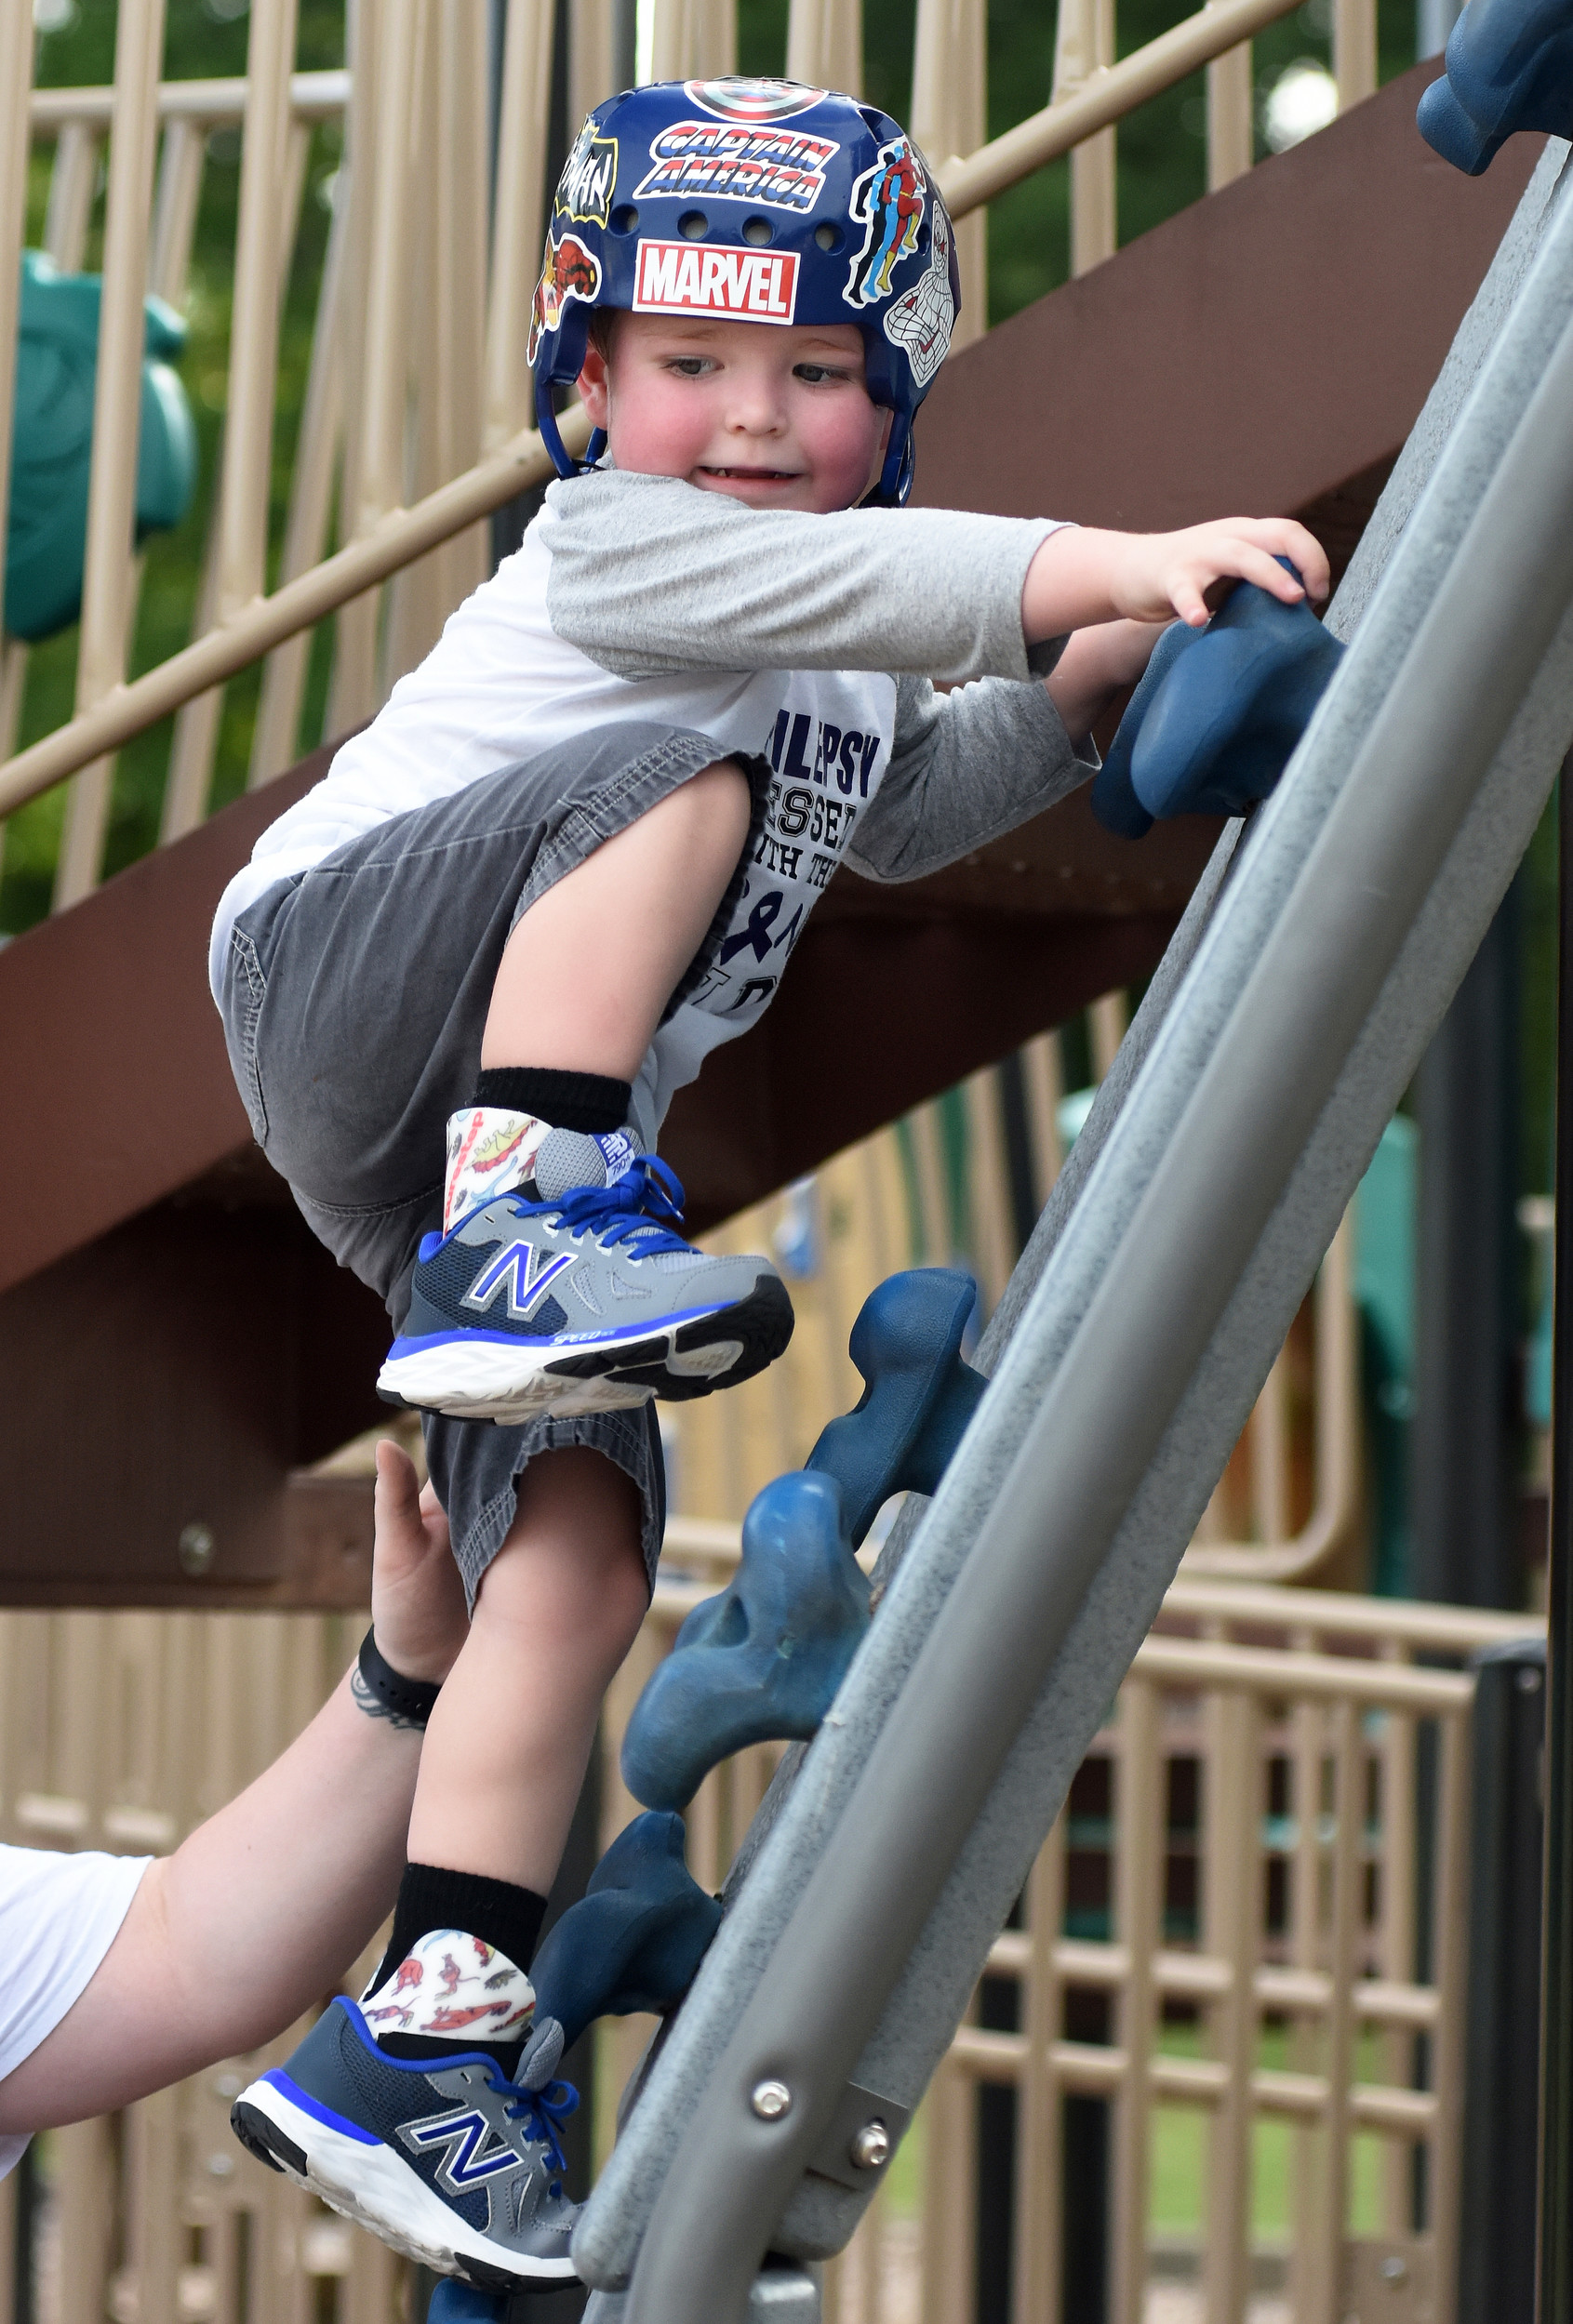 Three-year-old Cade Allen climbs on one of the Dellinger Park playgrounds.